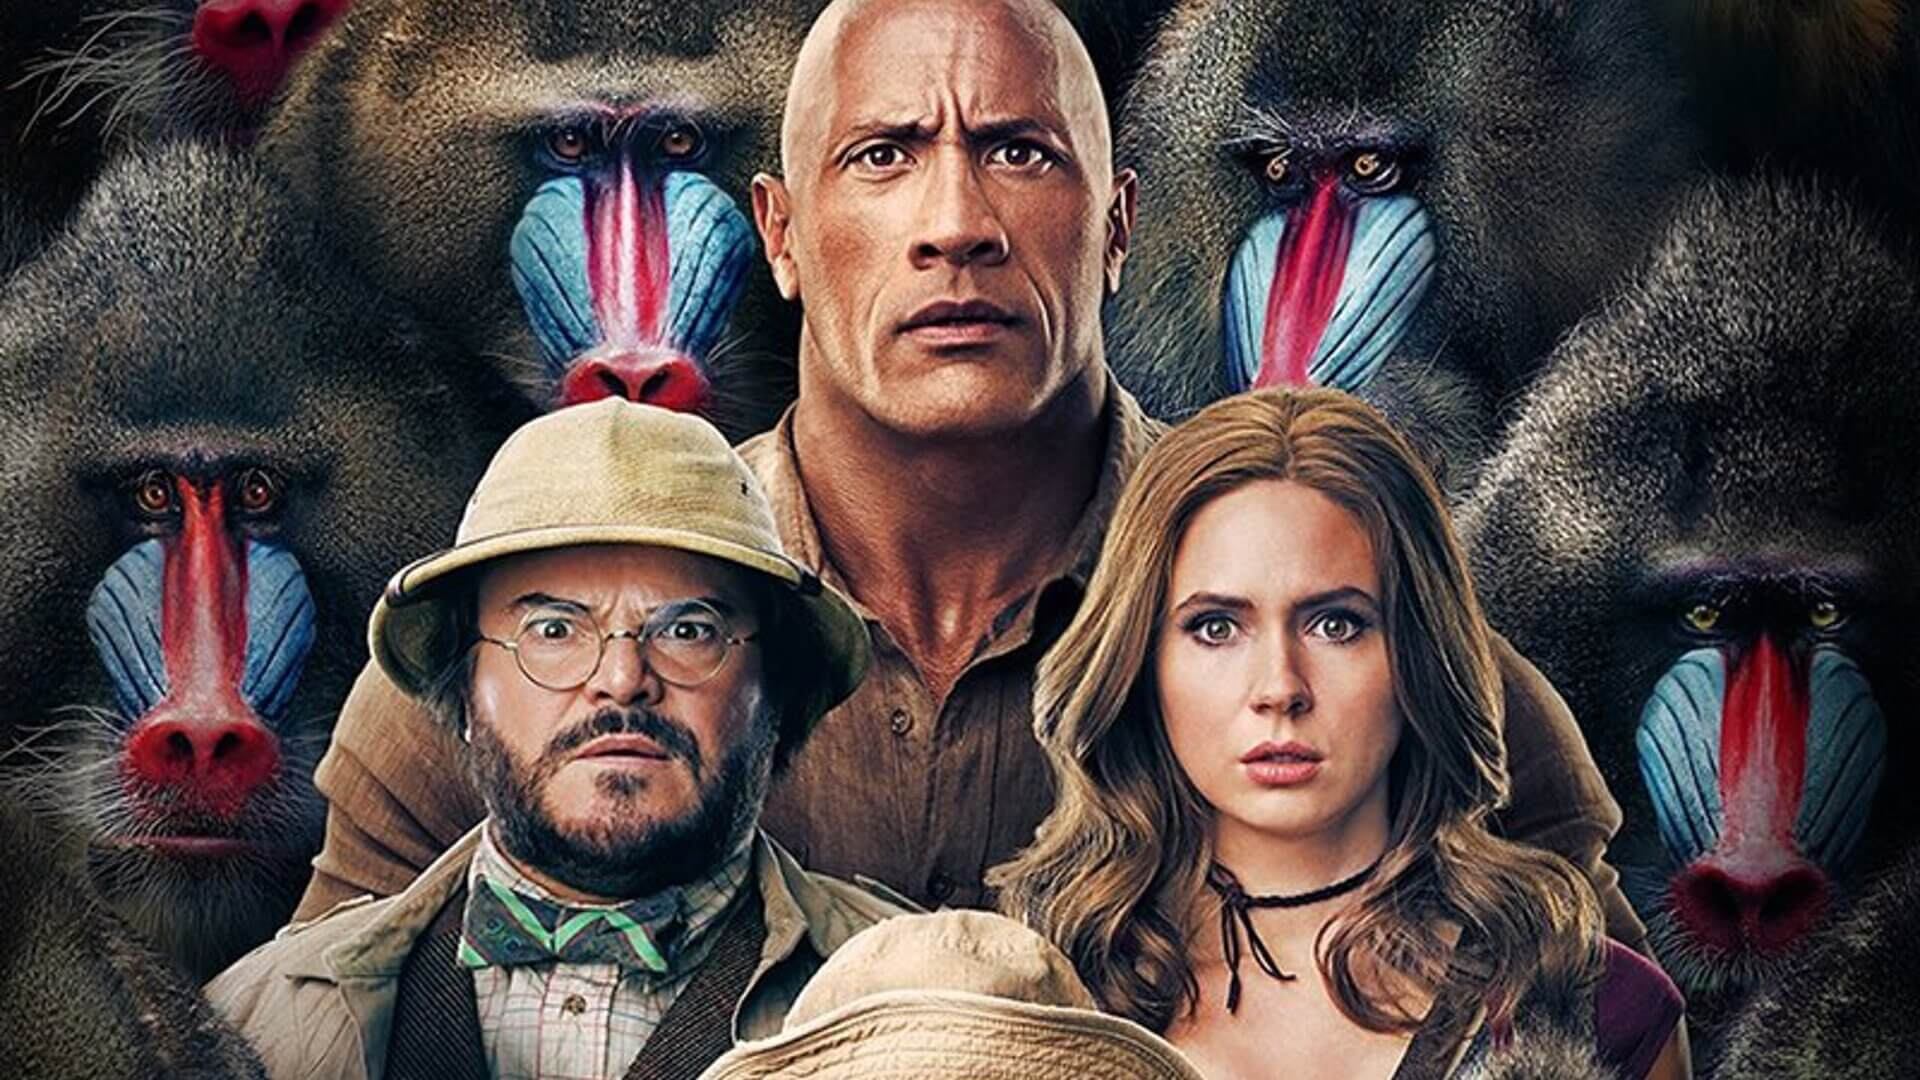 Jumanji: The Next Level - Final Trailer Out Now